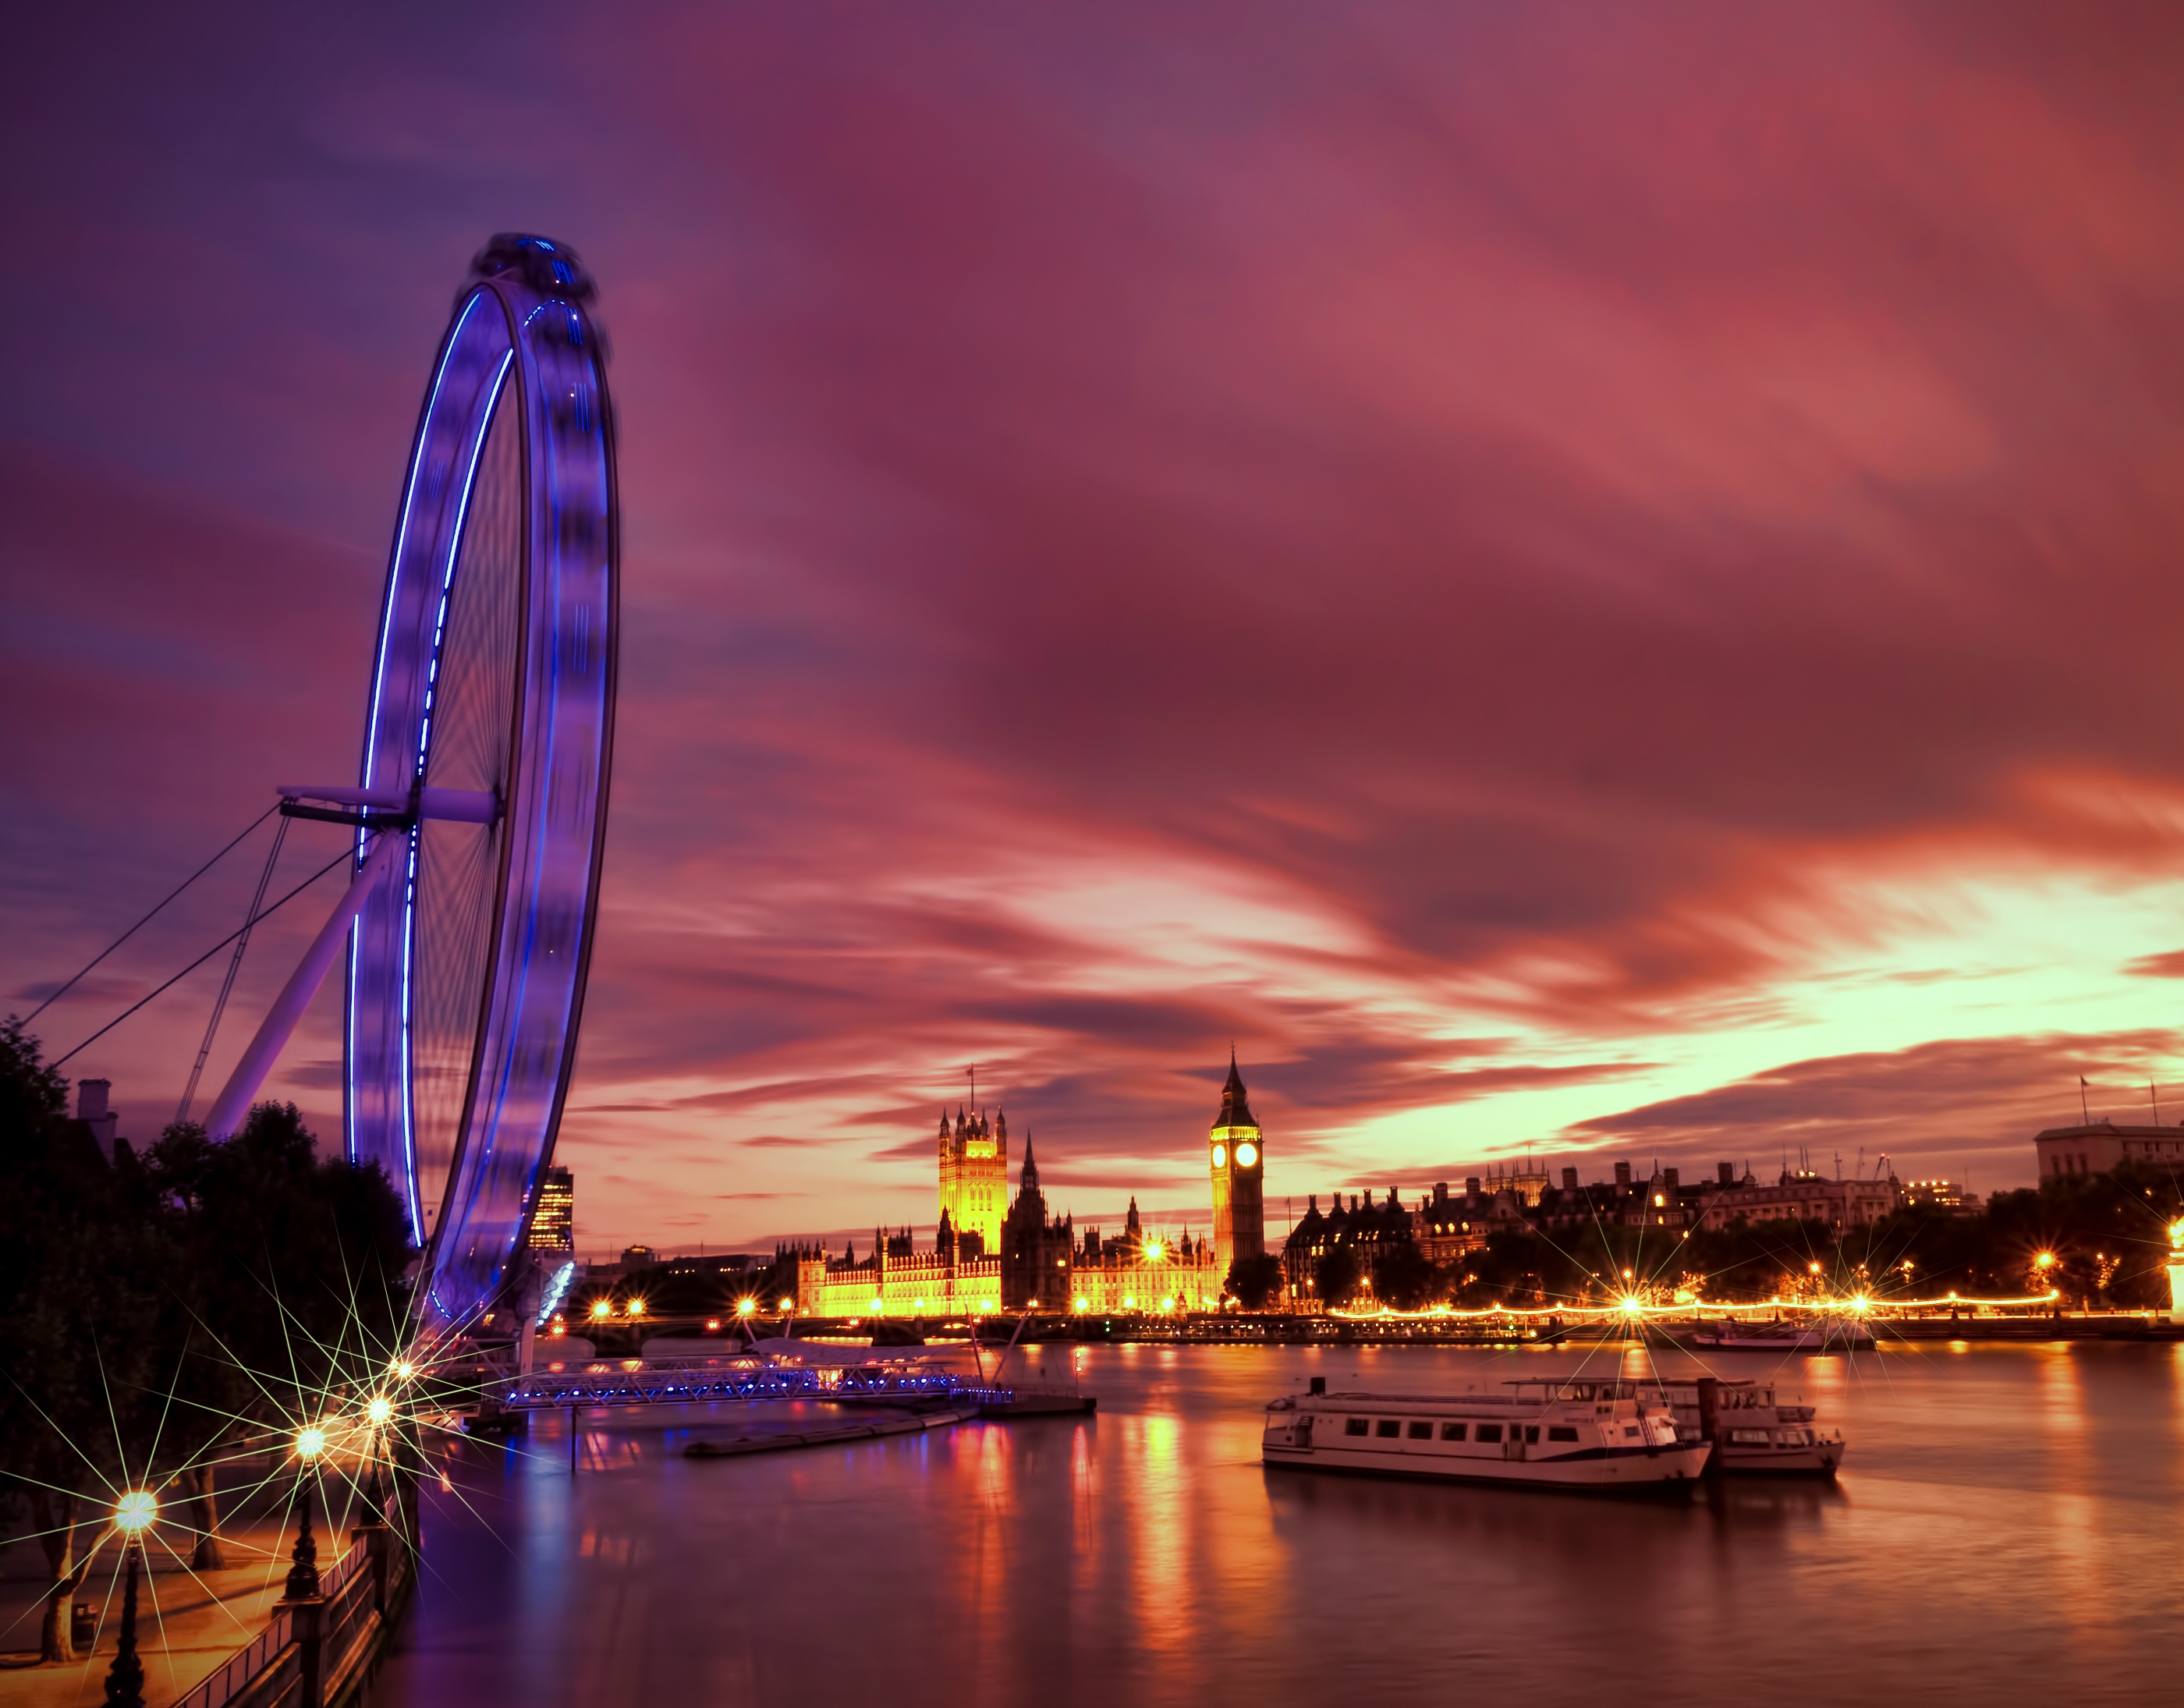 127316 Screensavers and Wallpapers London for phone. Download Cities, Rivers, Great Britain, Architecture, London, Lights, Backlight, Illumination, Evening, Ferris Wheel, Embankment, Quay, United Kingdom, England, Capital, Thames pictures for free